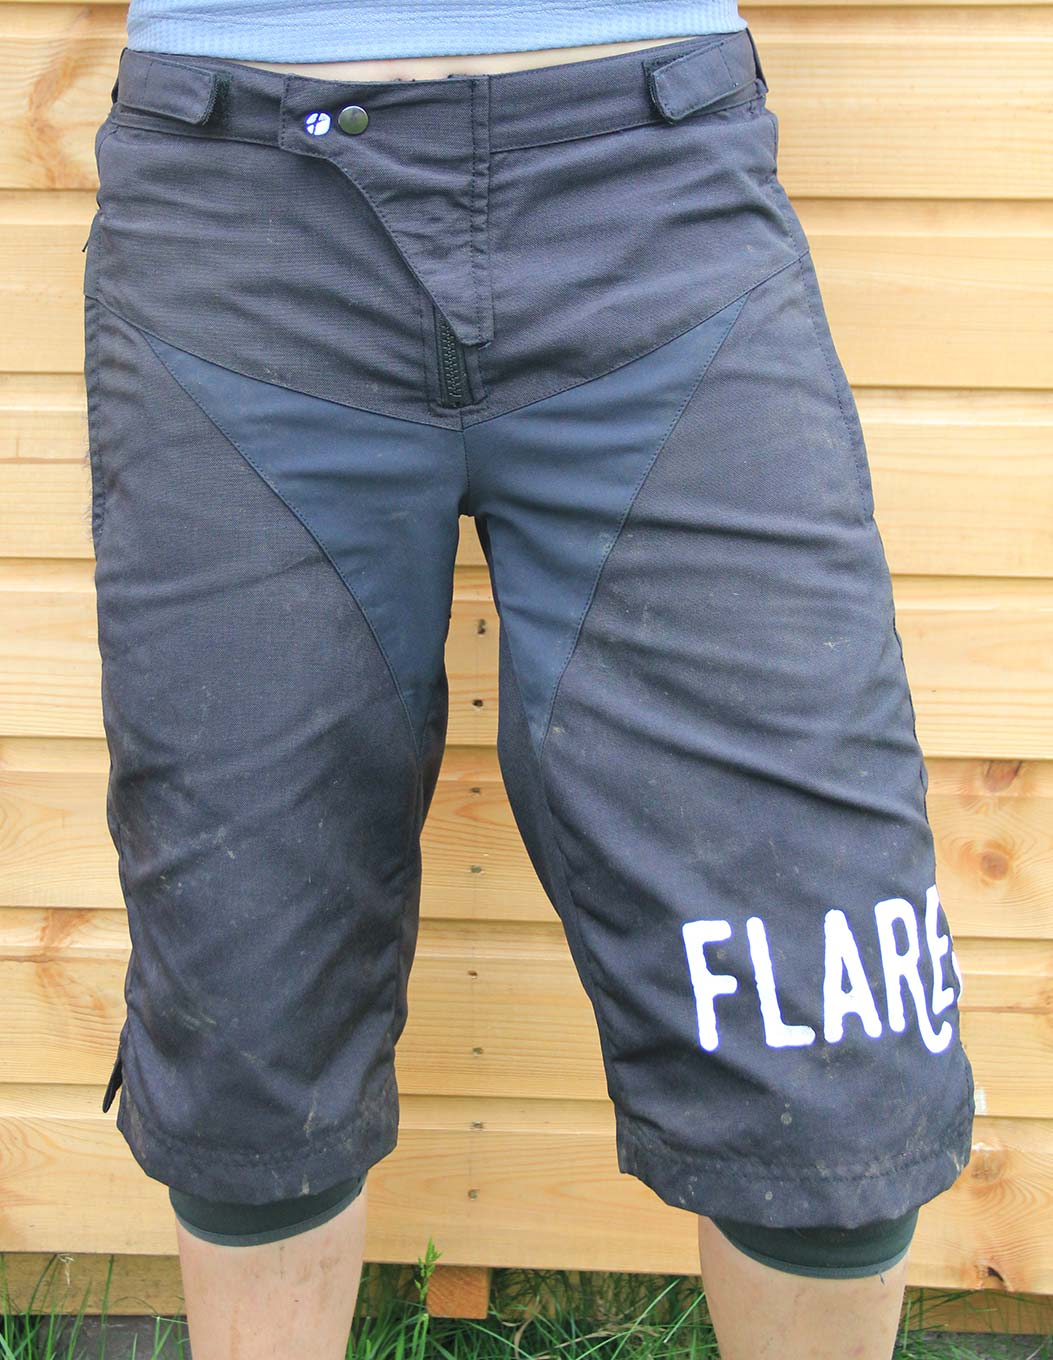 Flare Roost Downhill Short women's mtb clothing 2018